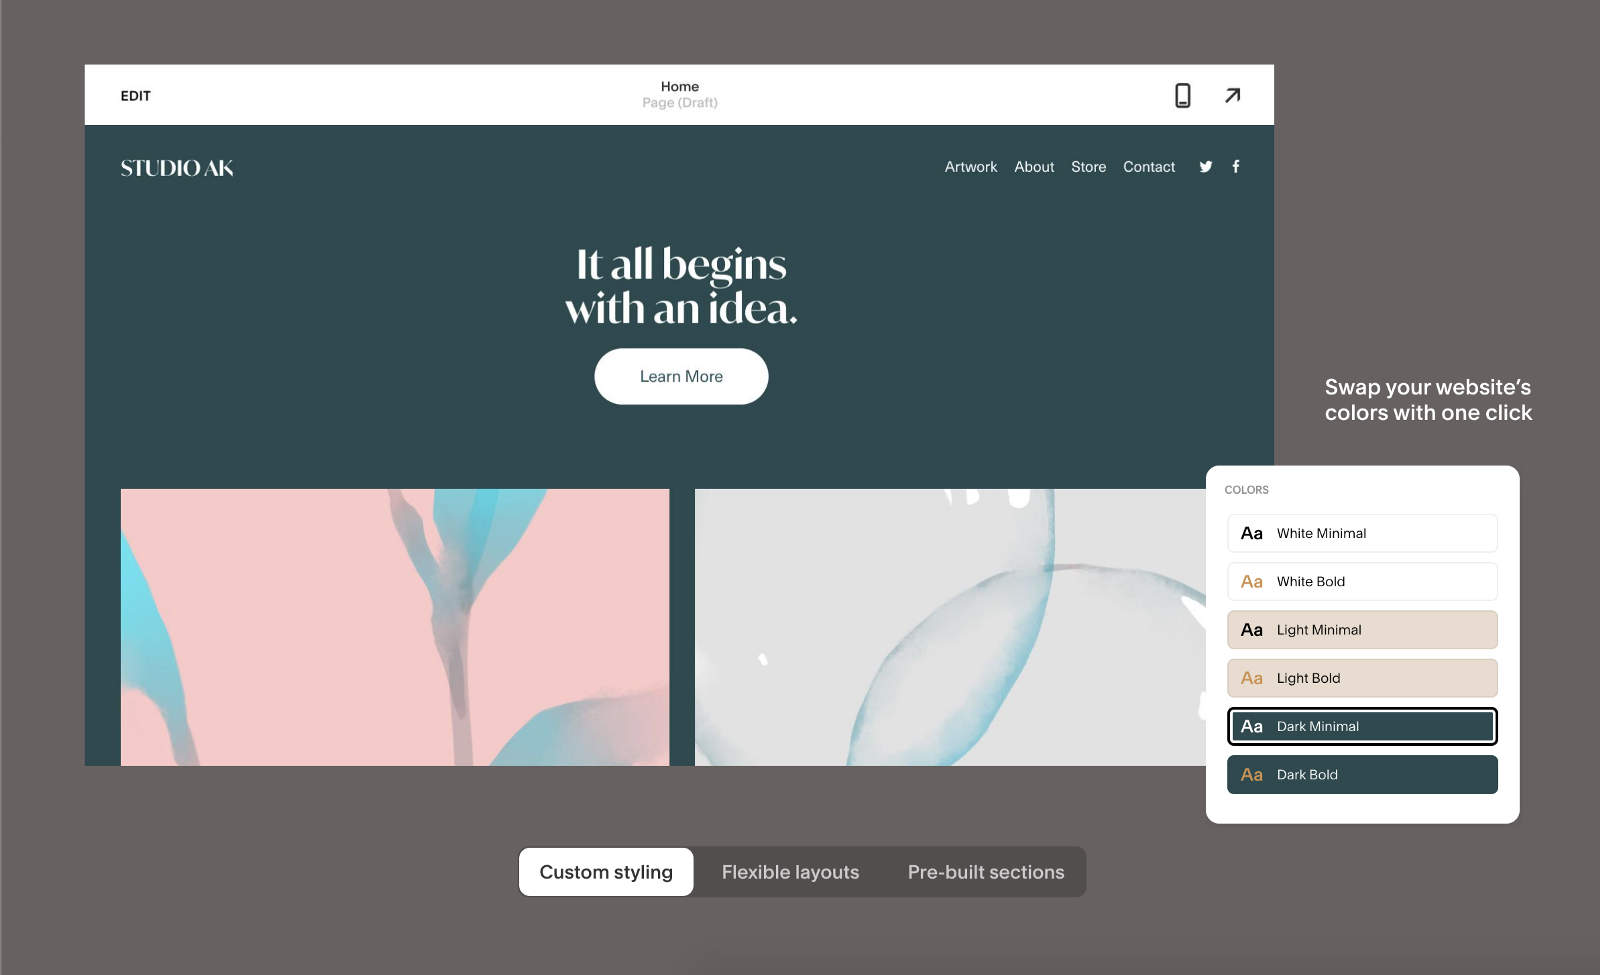 Customize colors and typography for Squarespace templates (source: Squarespace)